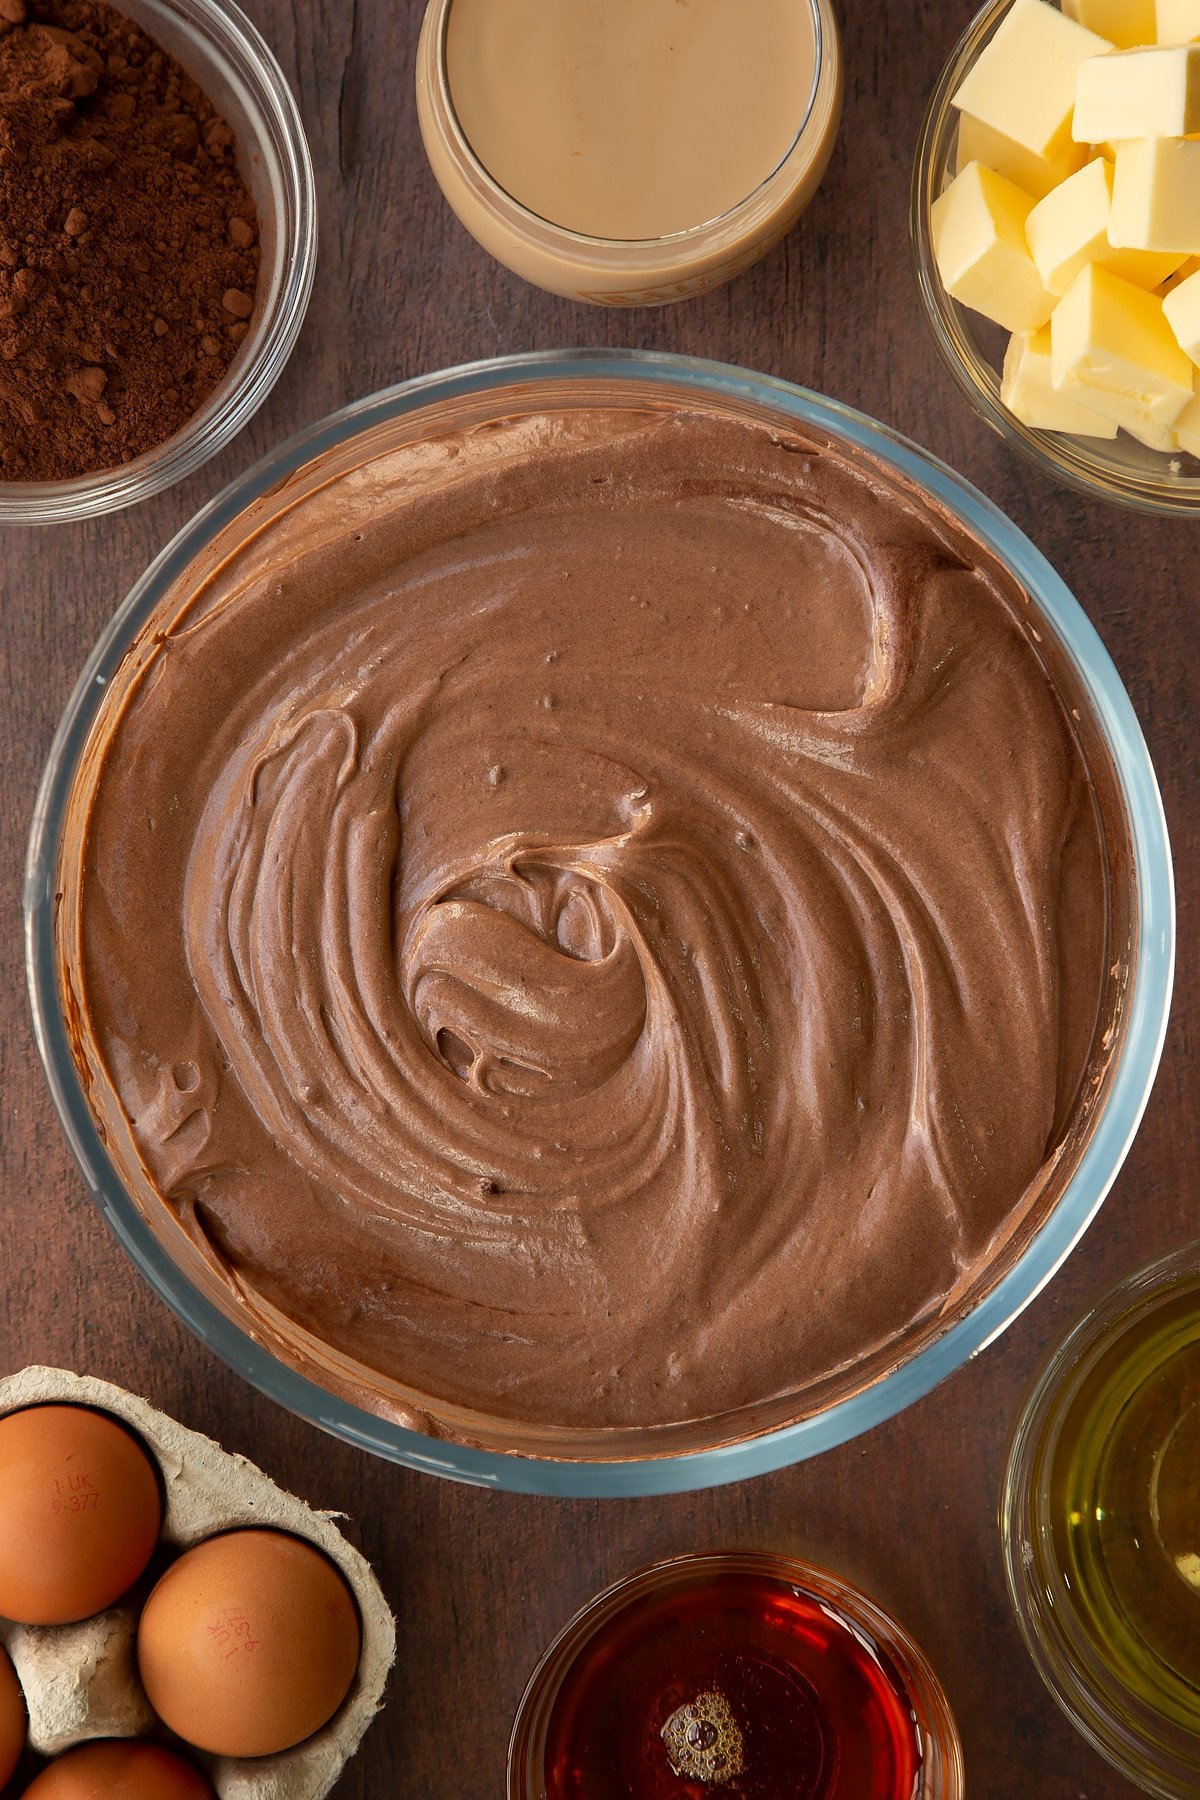 Chocolate Baileys cake batter in a glass mixing bowl. Ingredients to make a Baileys cake surround the bowl.